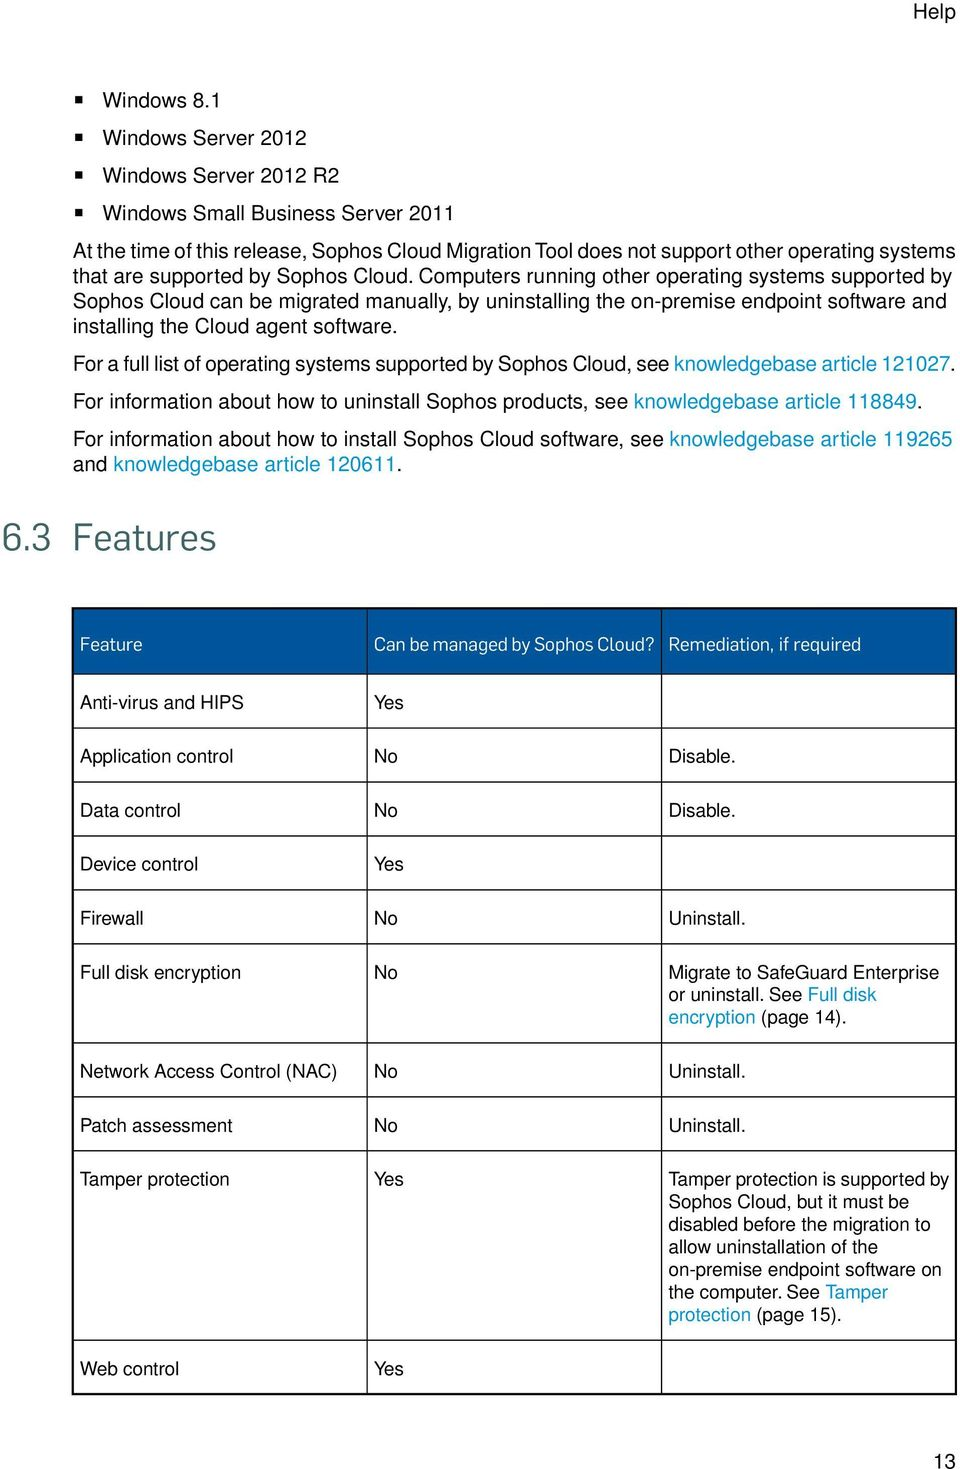 Sophos Cloud. Computers running other operating systems supported by Sophos Cloud can be migrated manually, by uninstalling the on-premise endpoint software and installing the Cloud agent software.